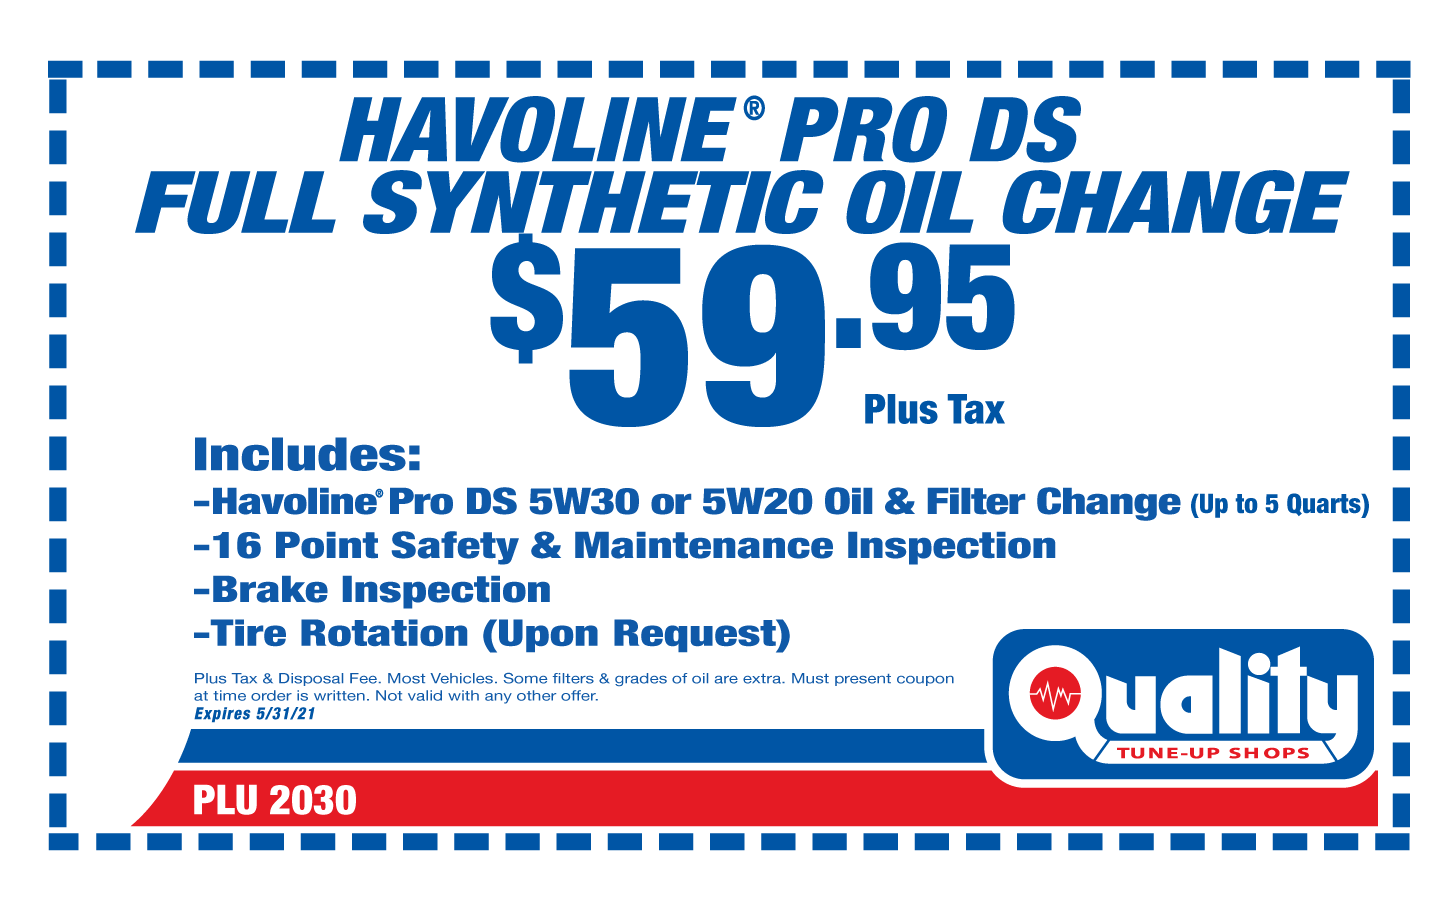 Havoline PRO DS Full Synthetic Oil Change